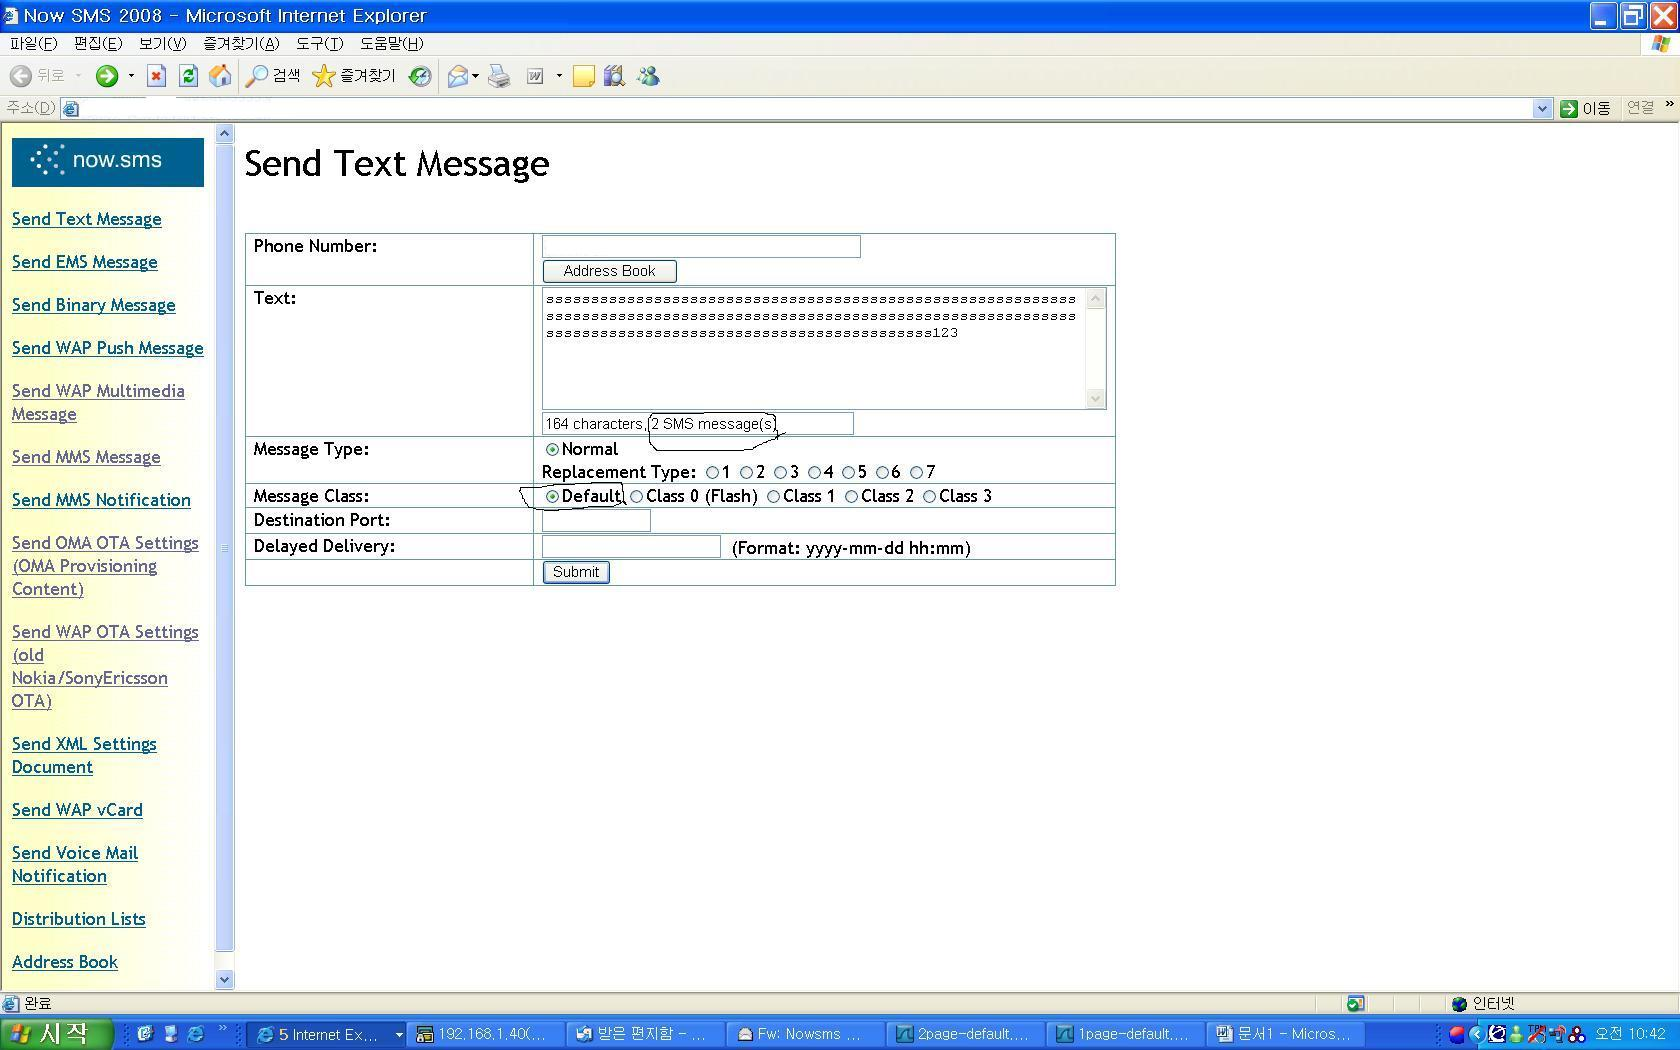 now sms 2008 2page borken